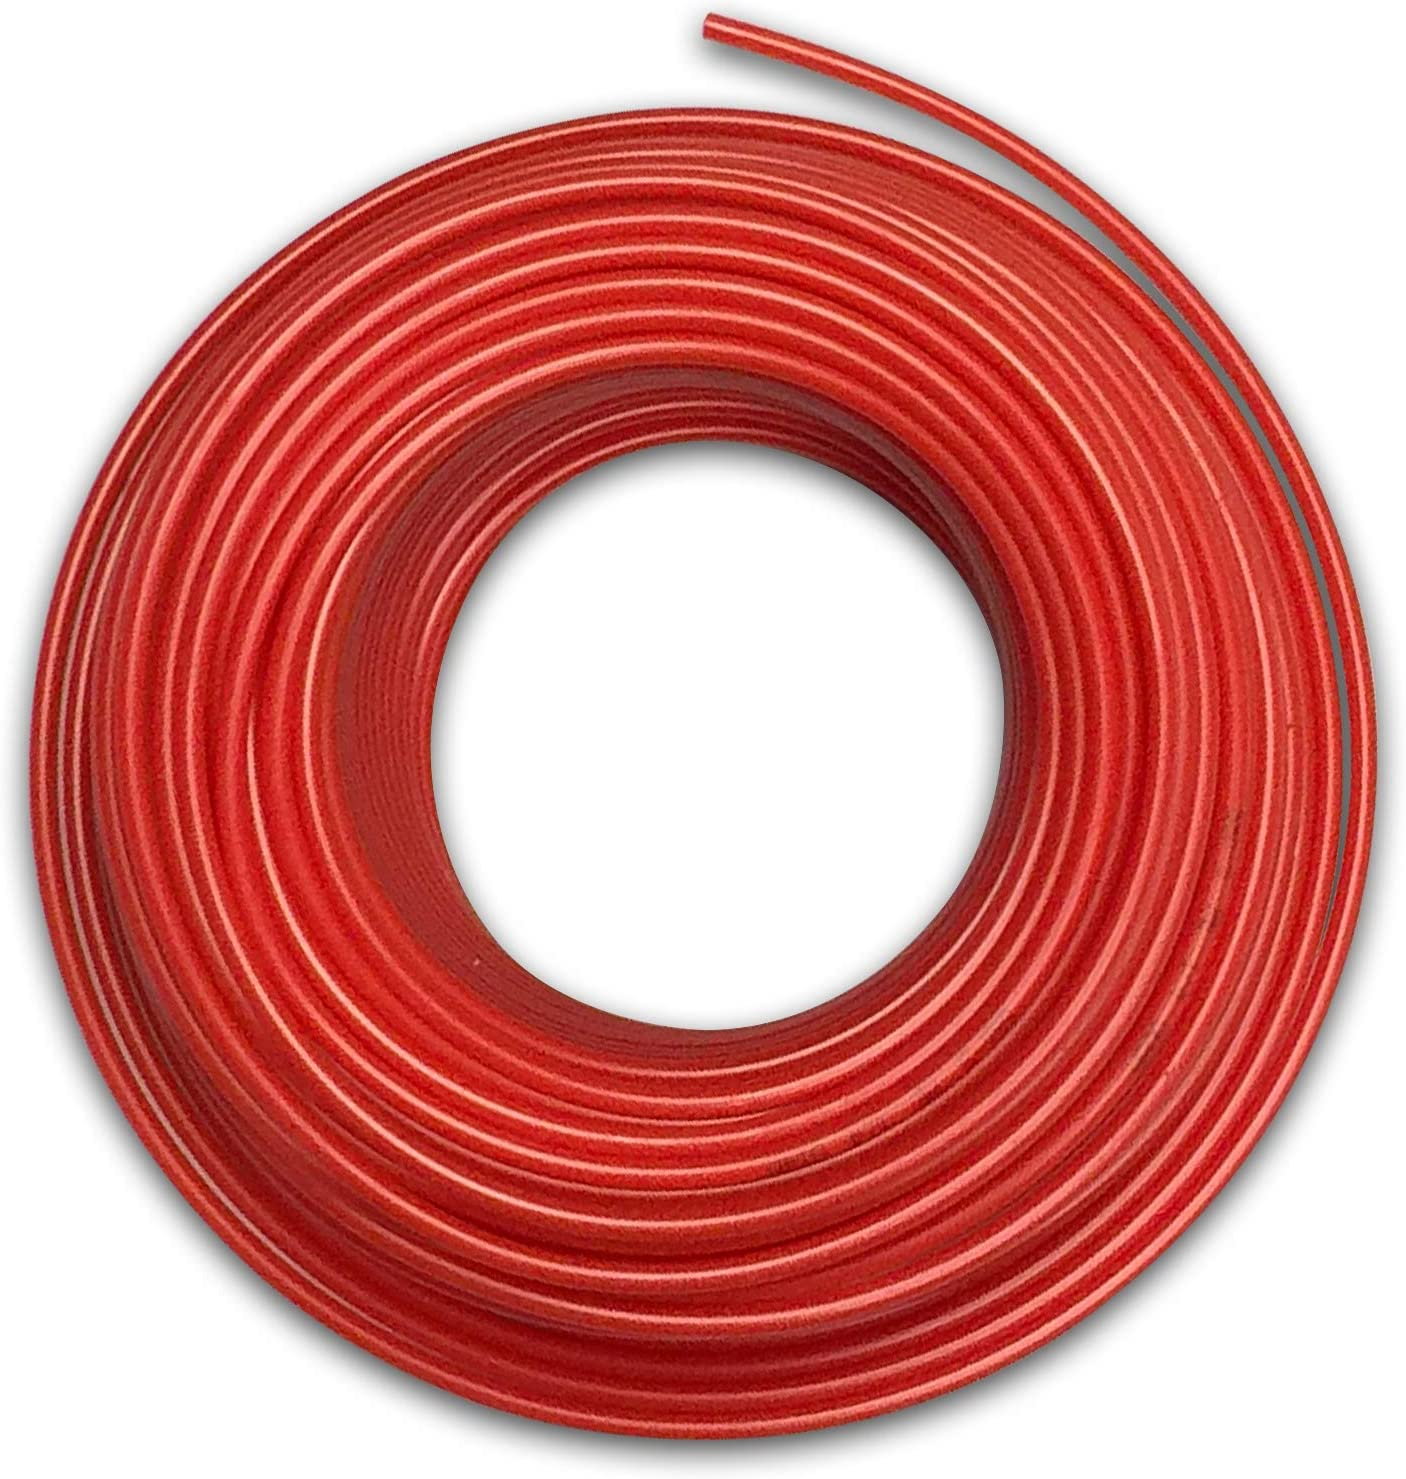 Food Grade 1/4 Inch Plastic Tubing for RO Water Filter System, Aquariums, Refrigerators, ECT; BPA free; Made from FDA compliant materials and meets NSF Standards and Regulations (50 Feet, Red)